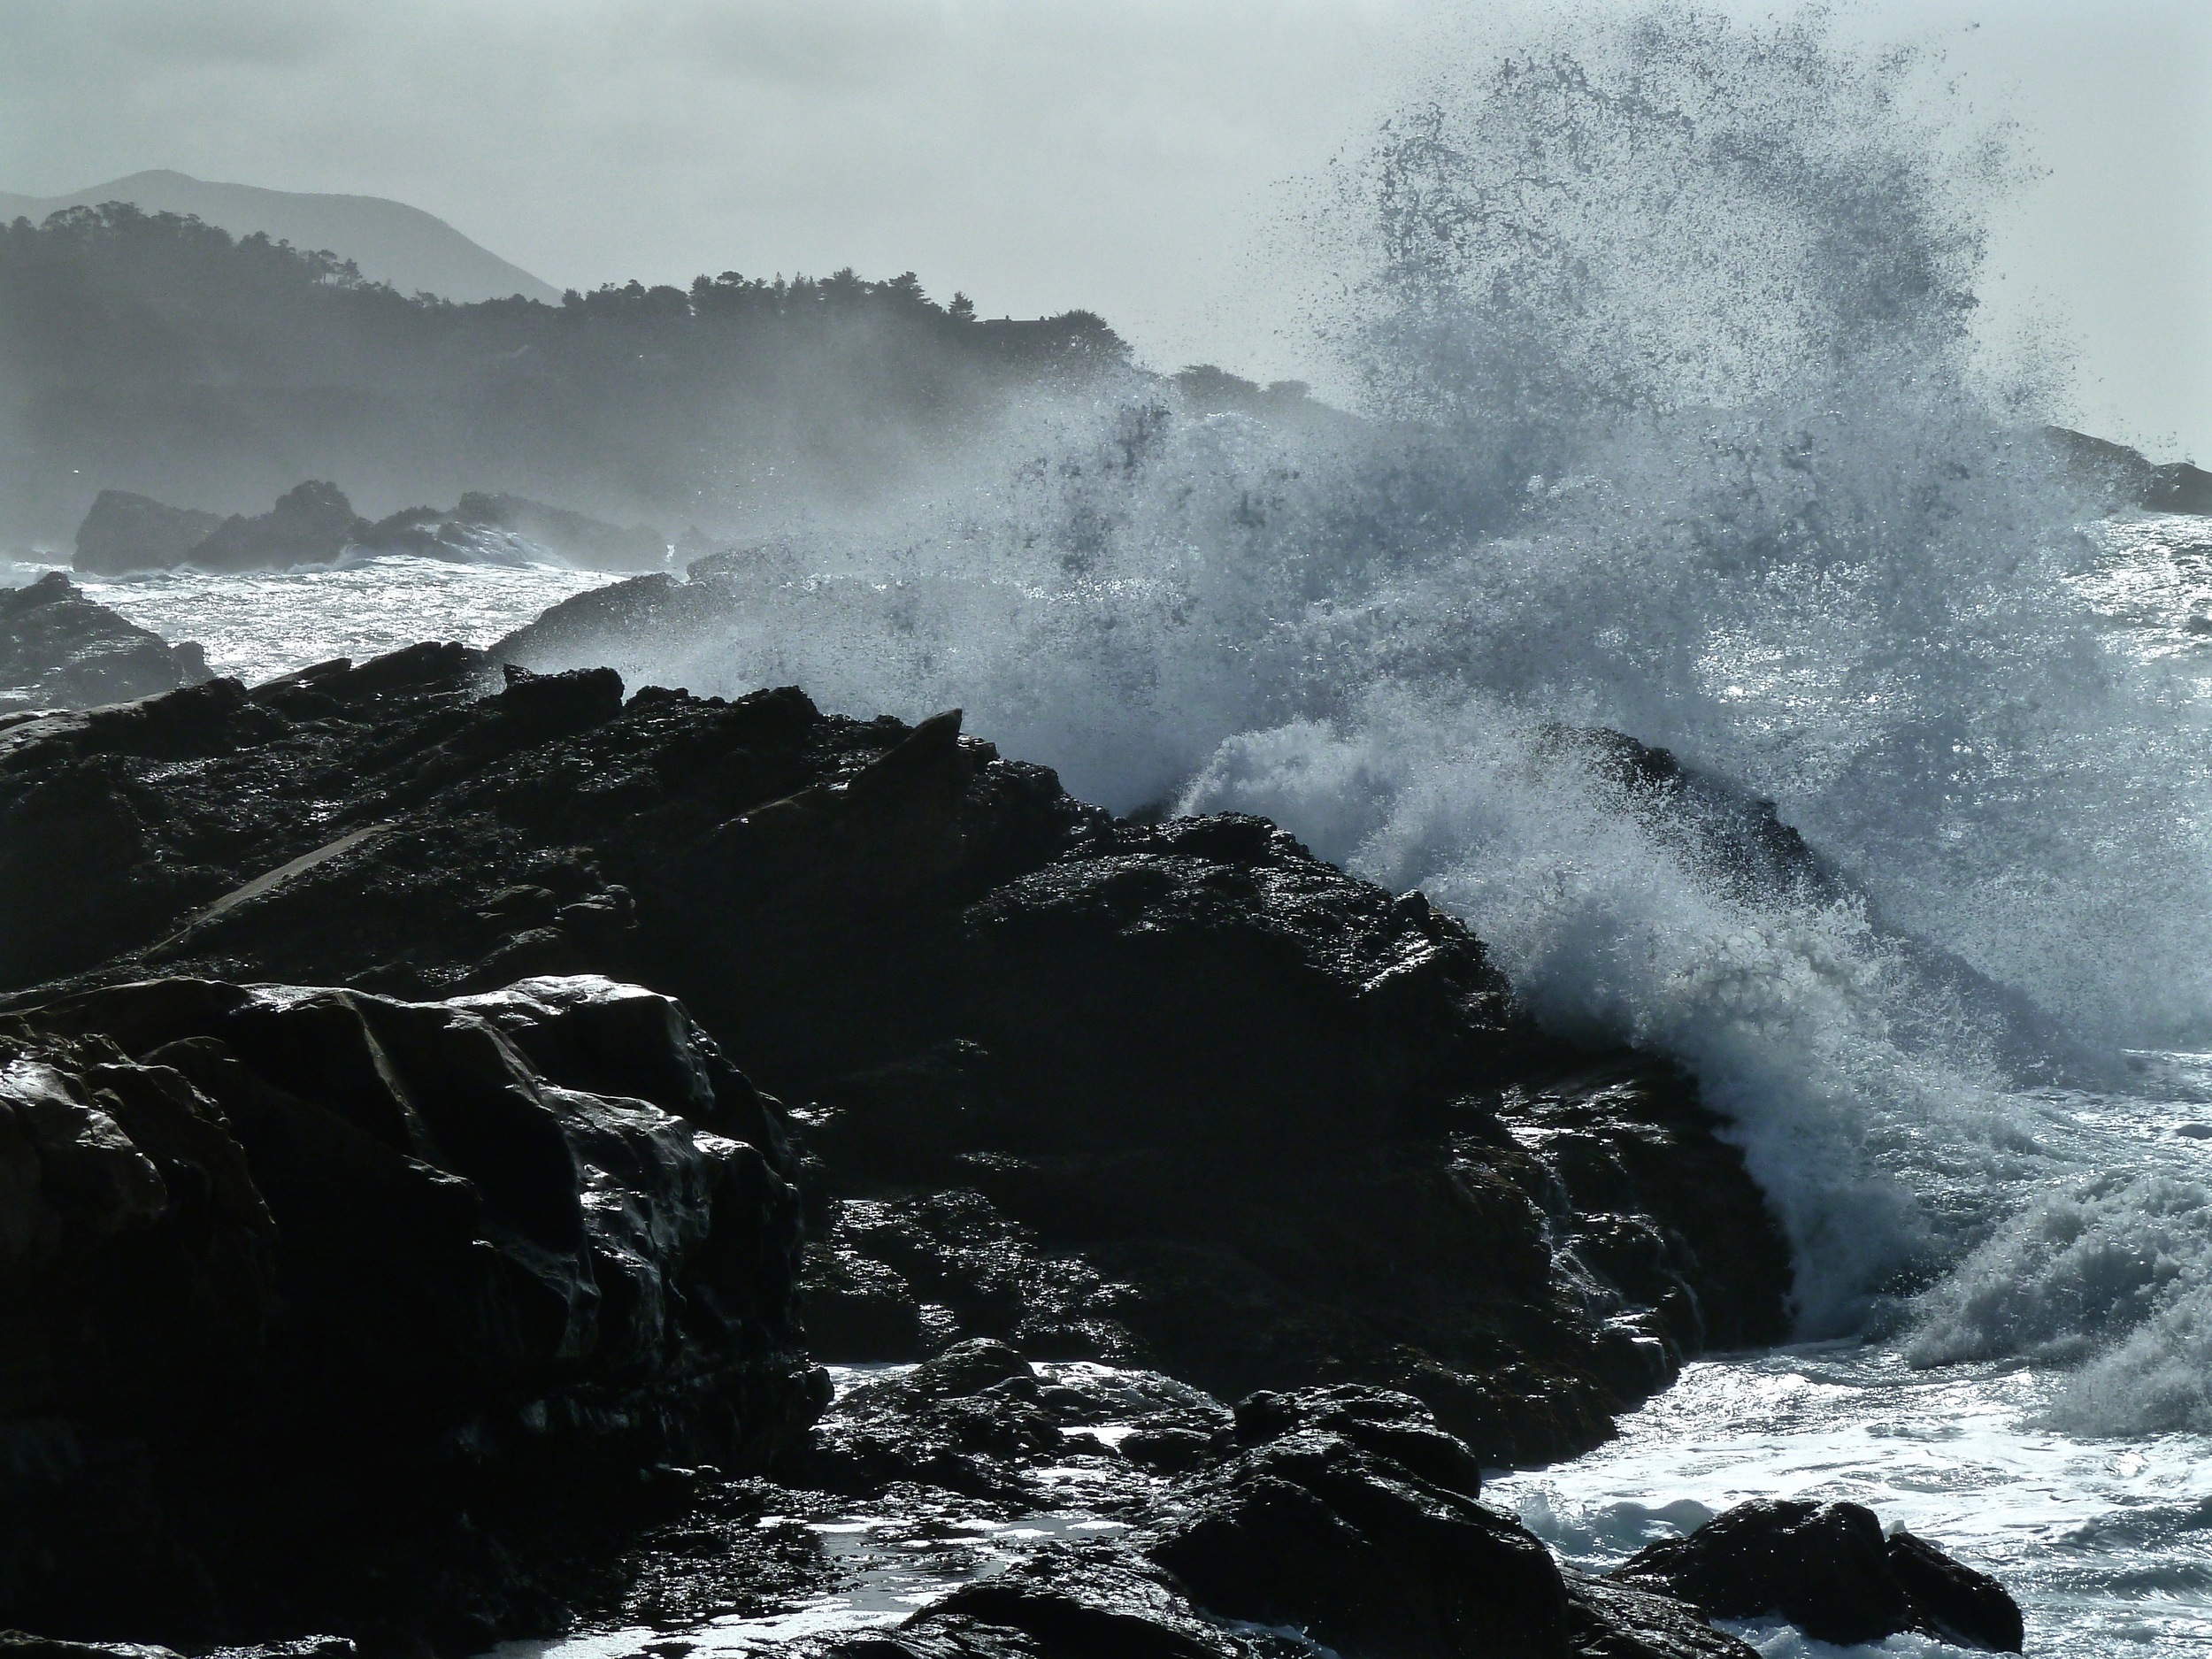 A breaker smashes against the rocks at Sand Hill Cove, Point Lobos.